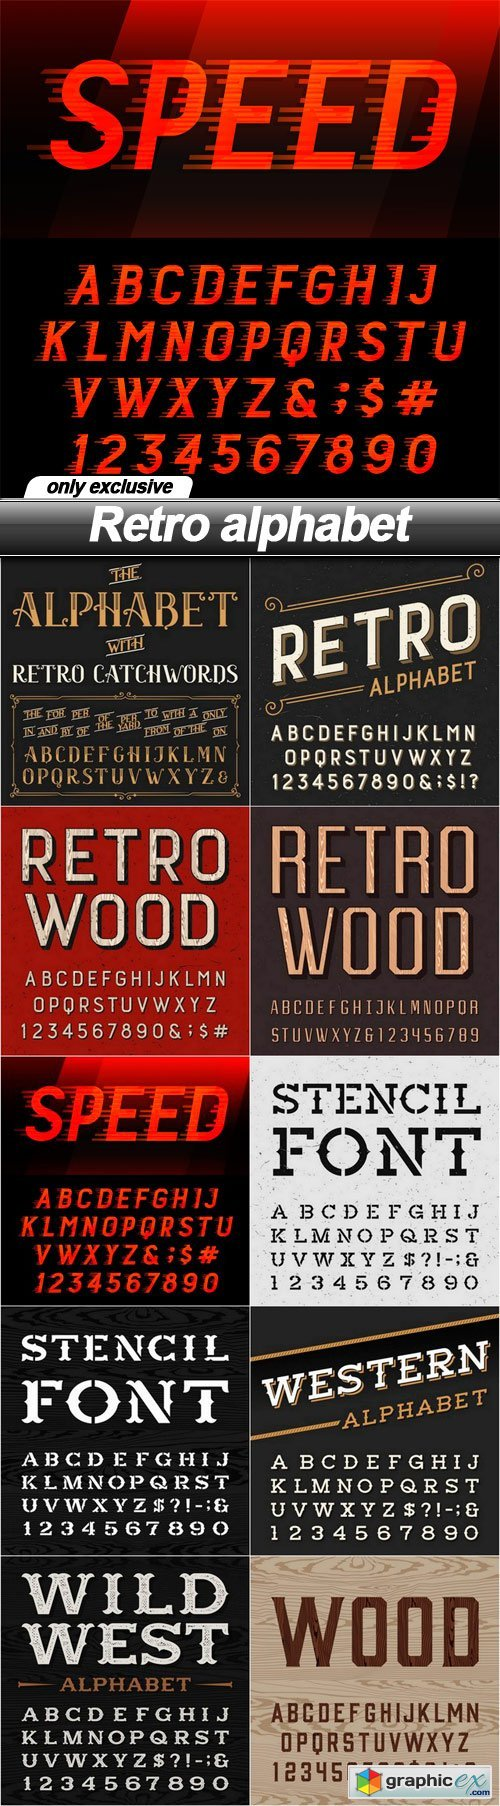 Retro alphabet - 10 EPS